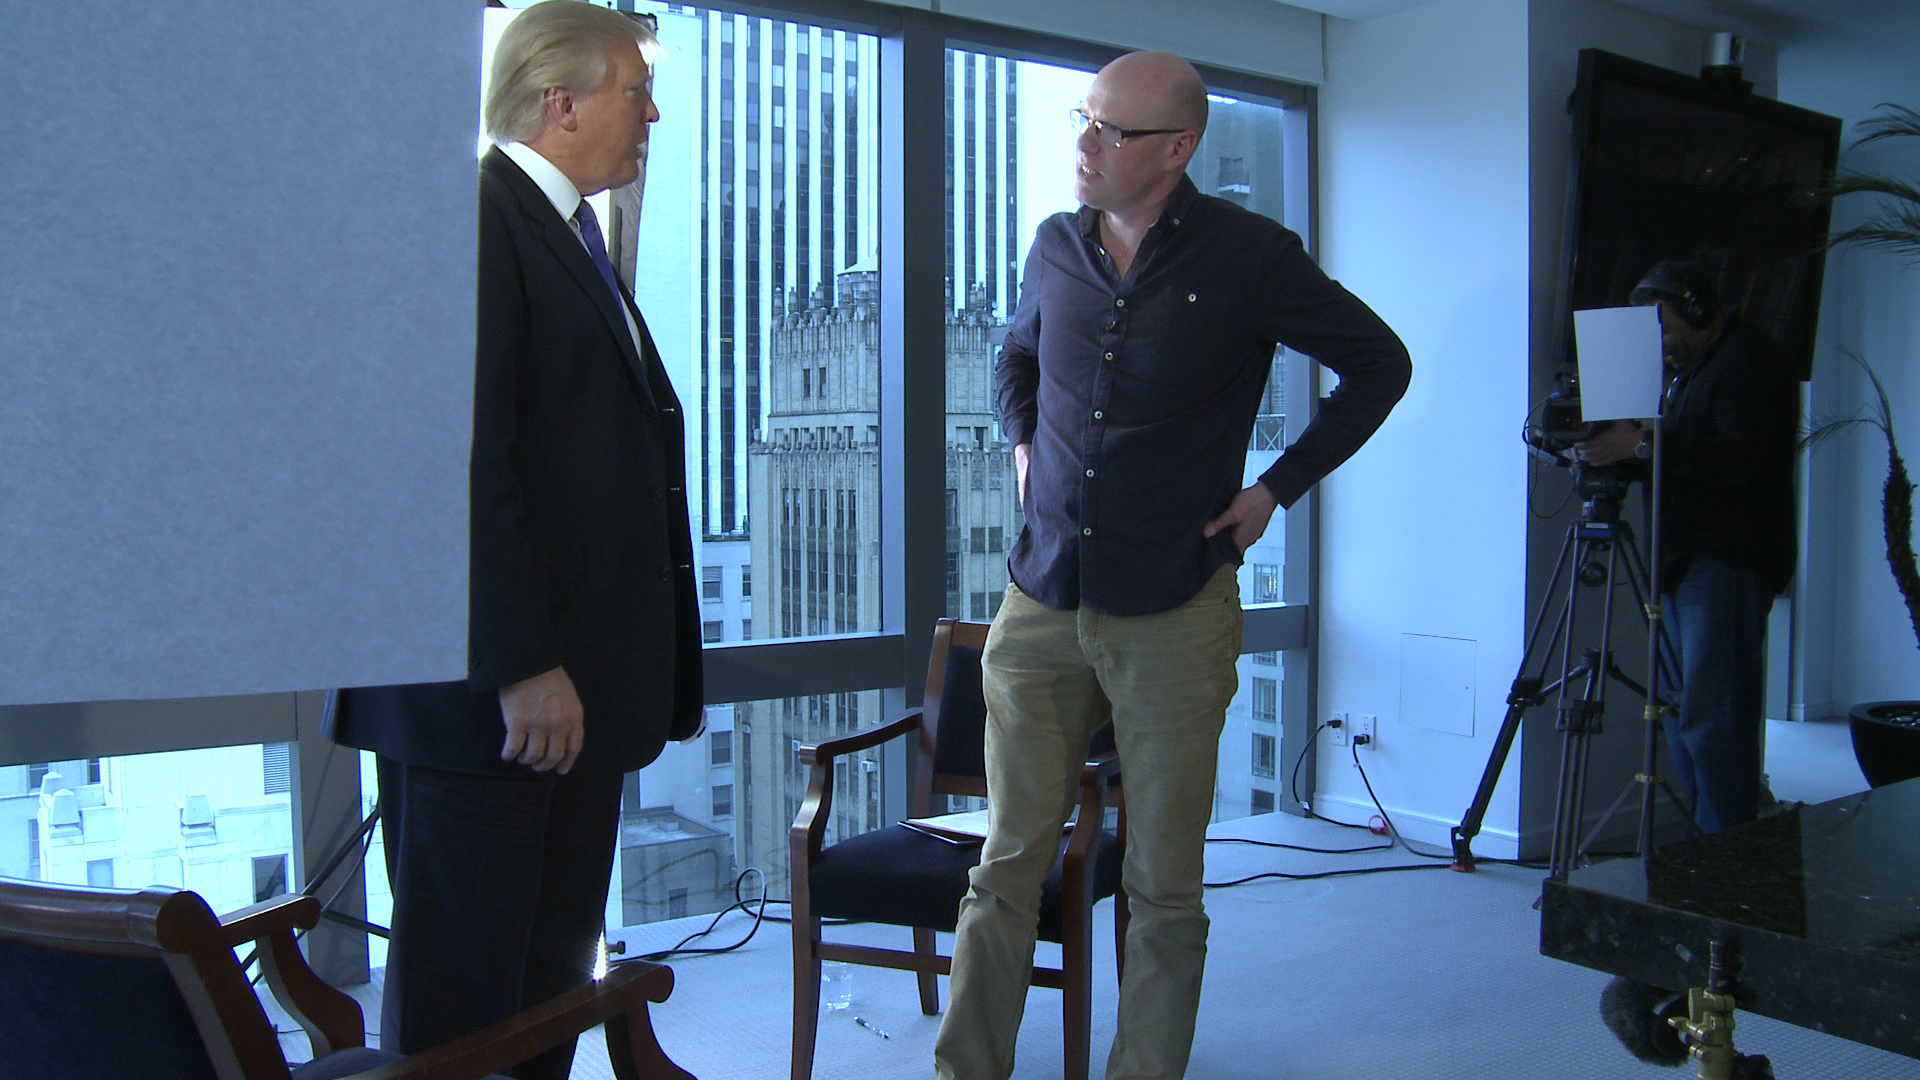 Donald Trump and Montrose filmmaker Anthony Baxter at Trump Tower, New York City in 2014.